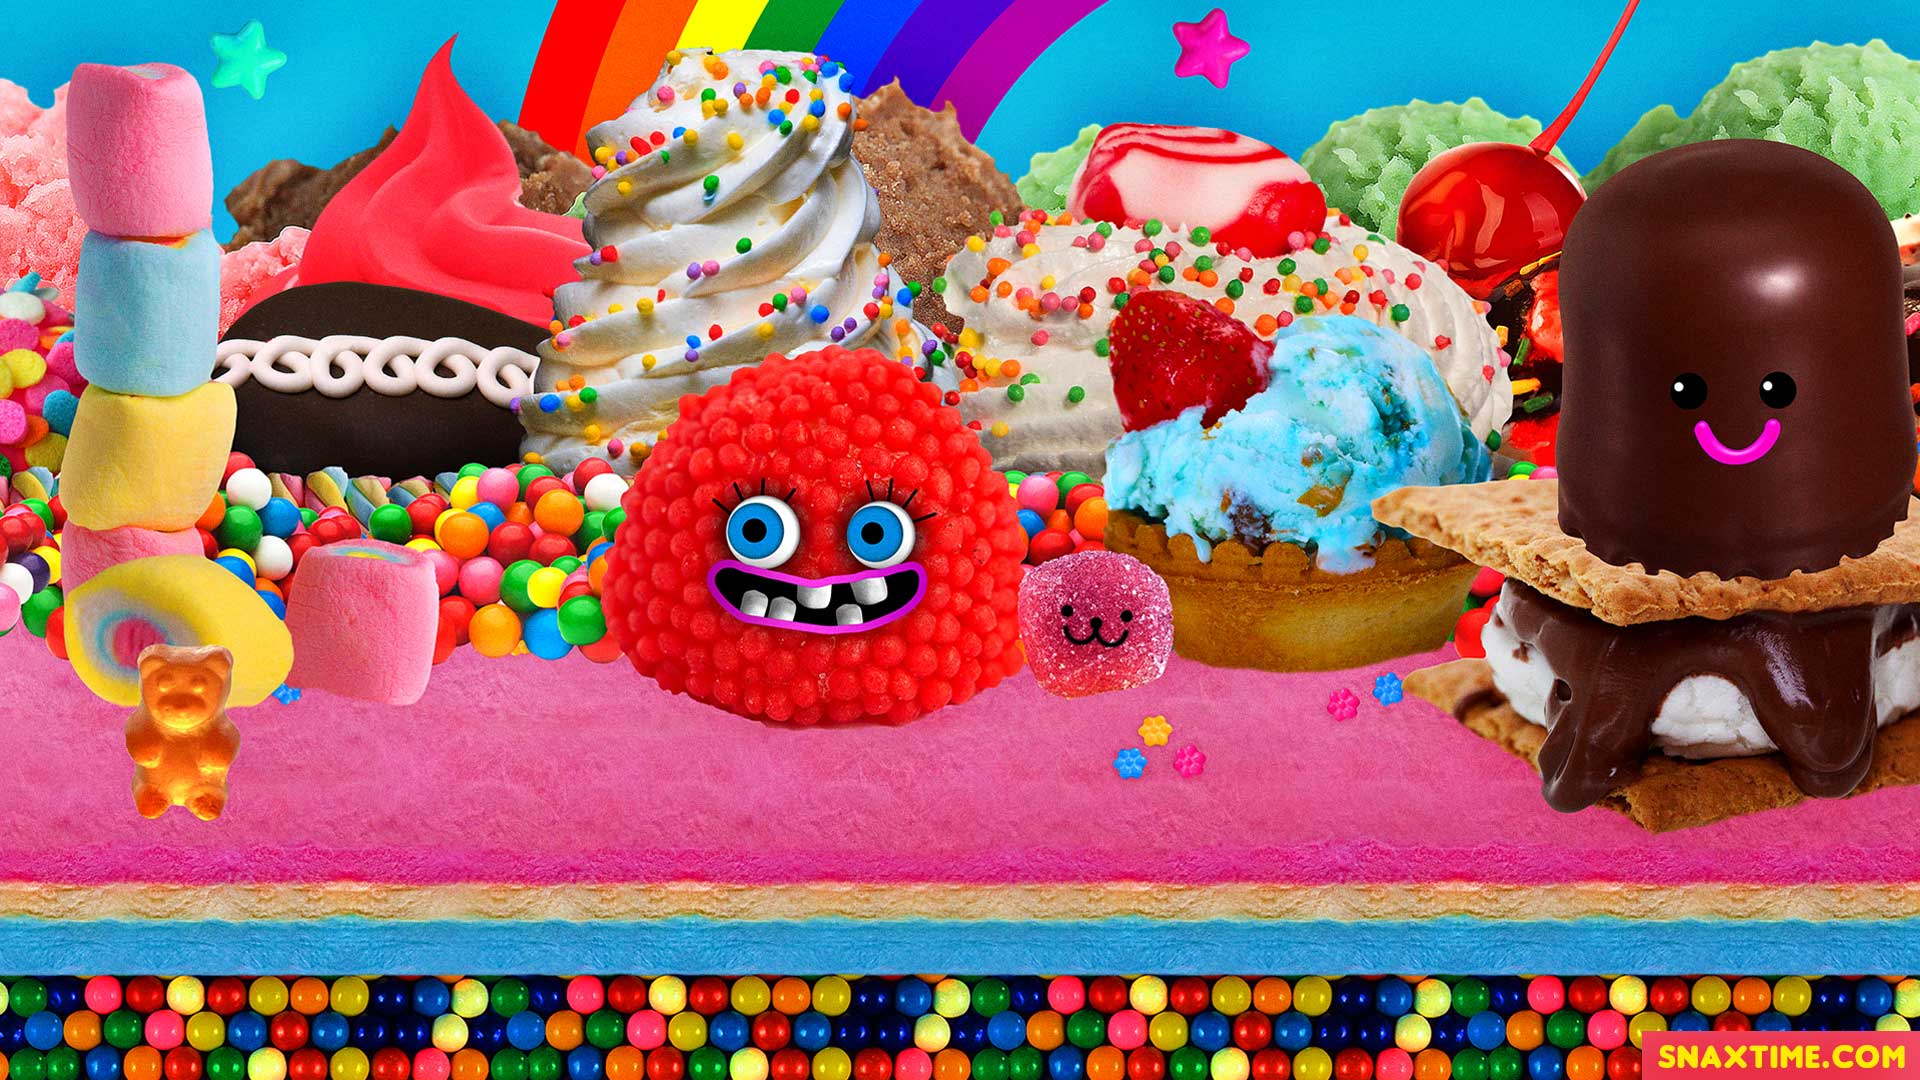 Free Zoom Background - Candyland Fantasy Ice Cream Cupcakes S'mores Dessert